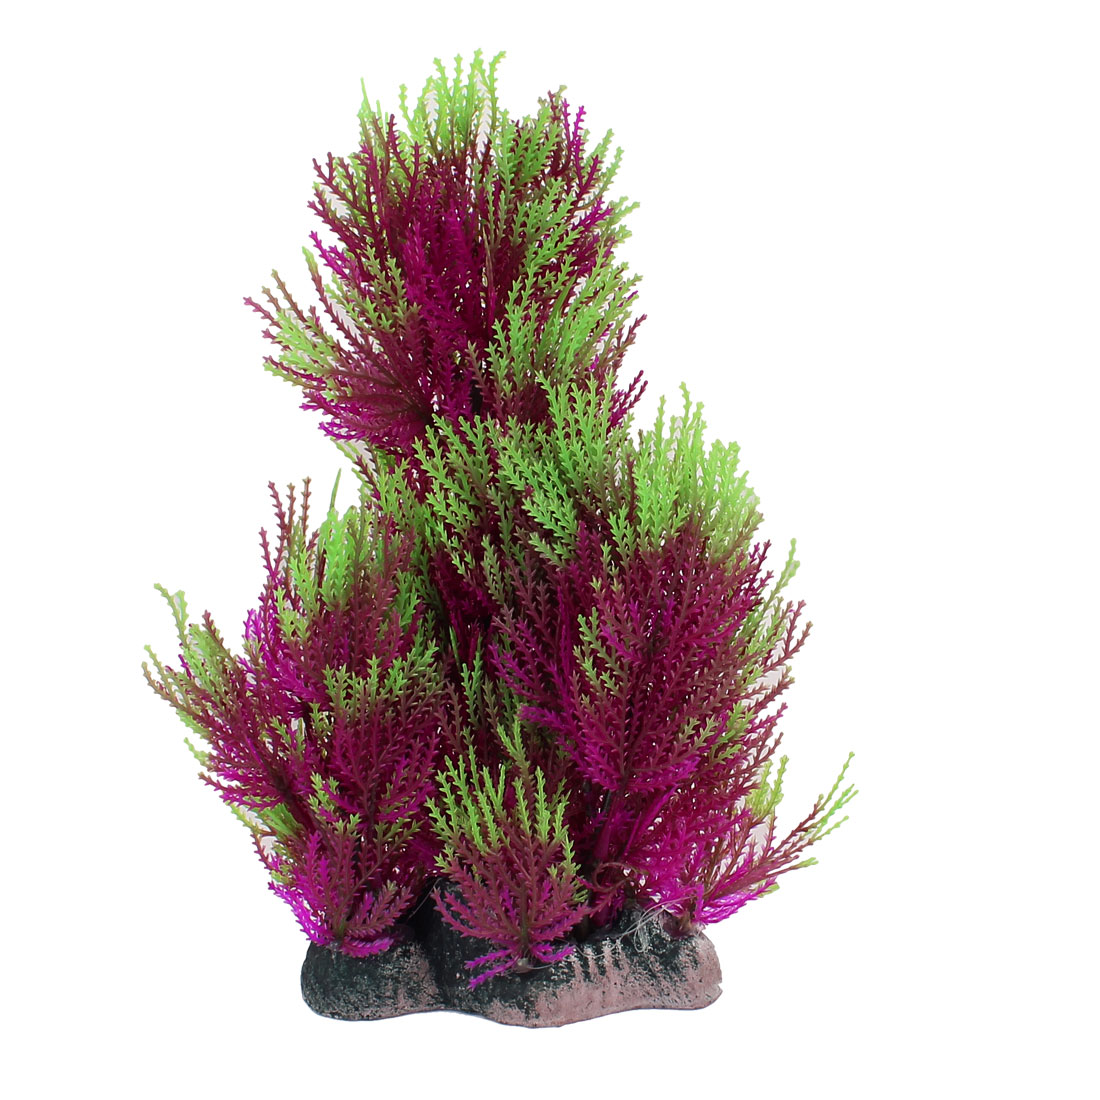 Plastic Simulation Aquascaping Underwater Grass Decor Aquarium Plant Green Purple